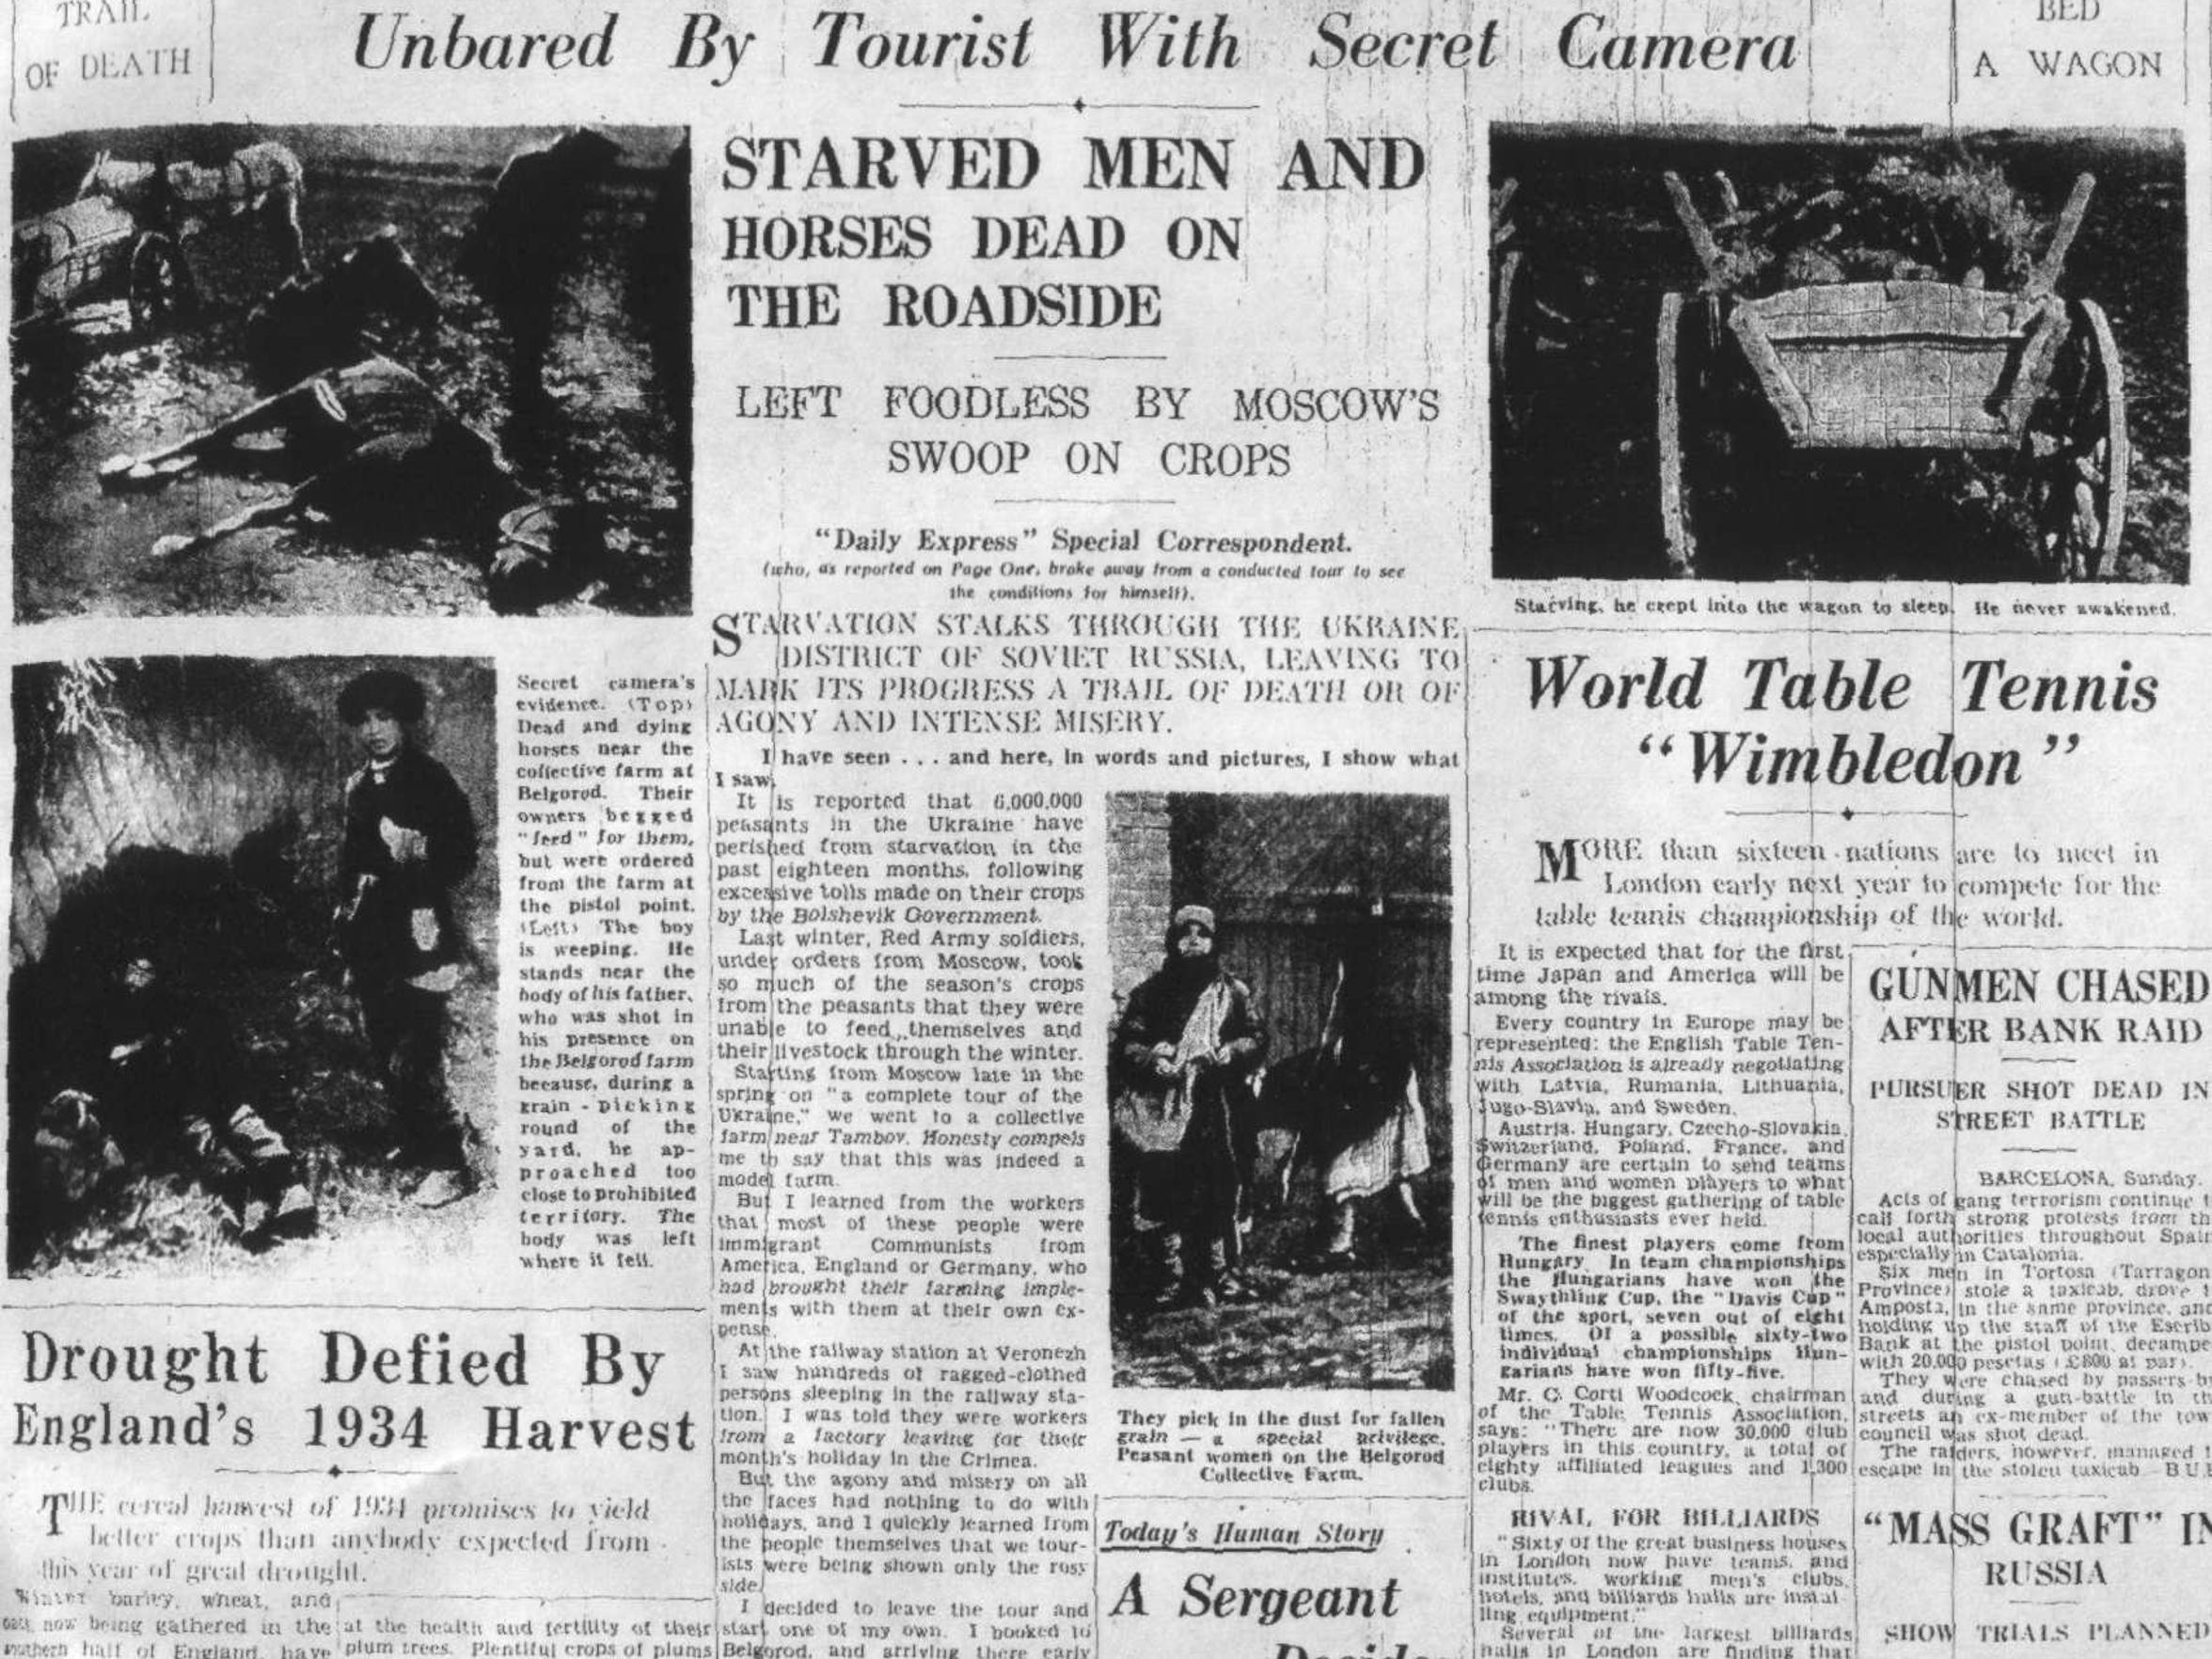 Daily Express, Aug. 6, 1934.